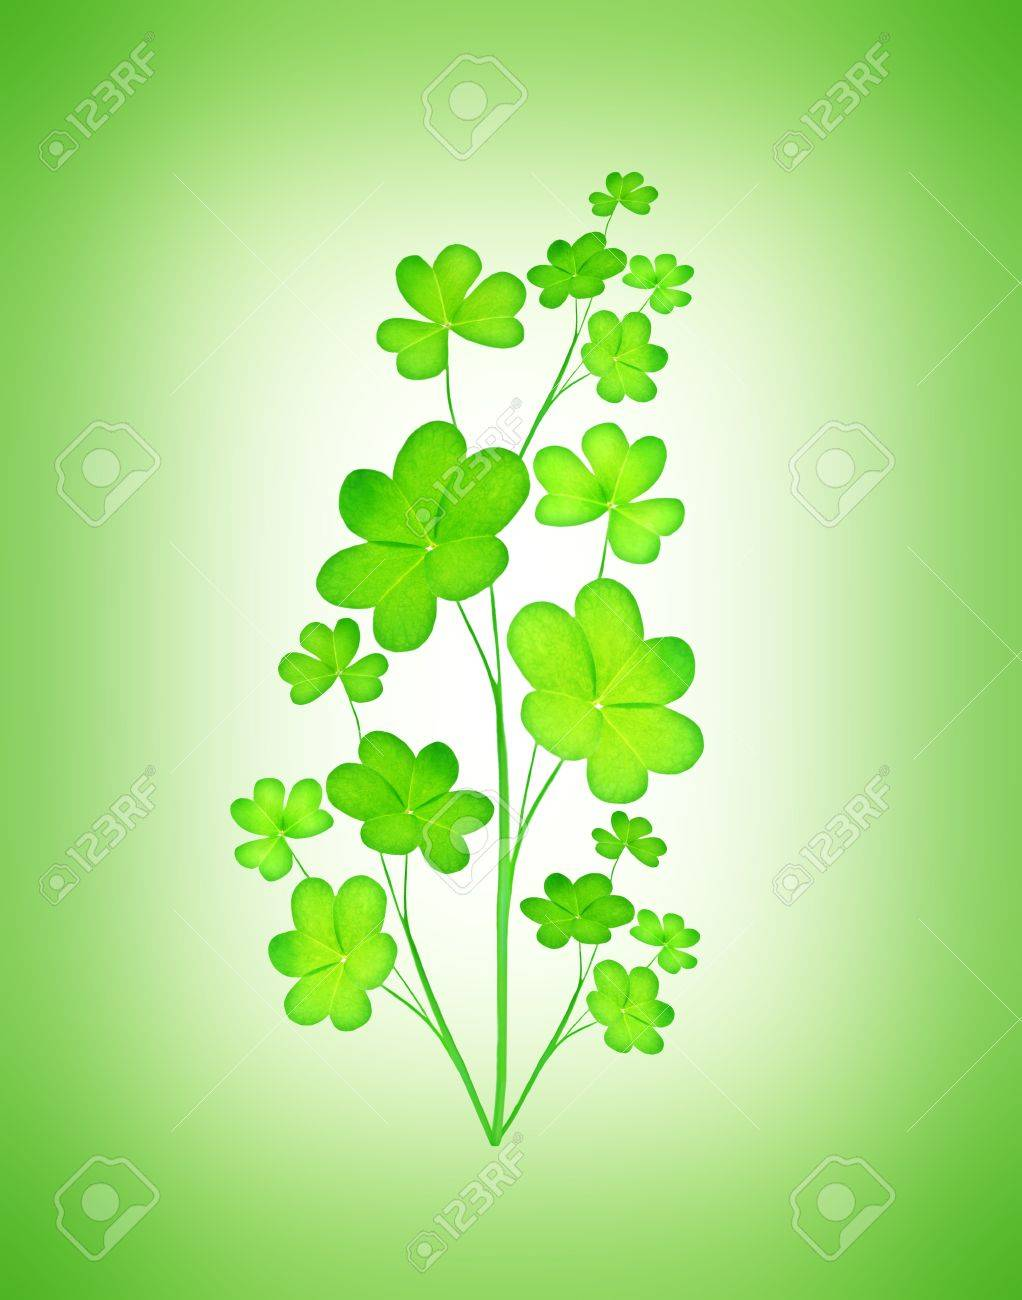 Green clover holiday plant, st.Patrick's day decoration isolated on green background with text space Stock Photo - 8980604